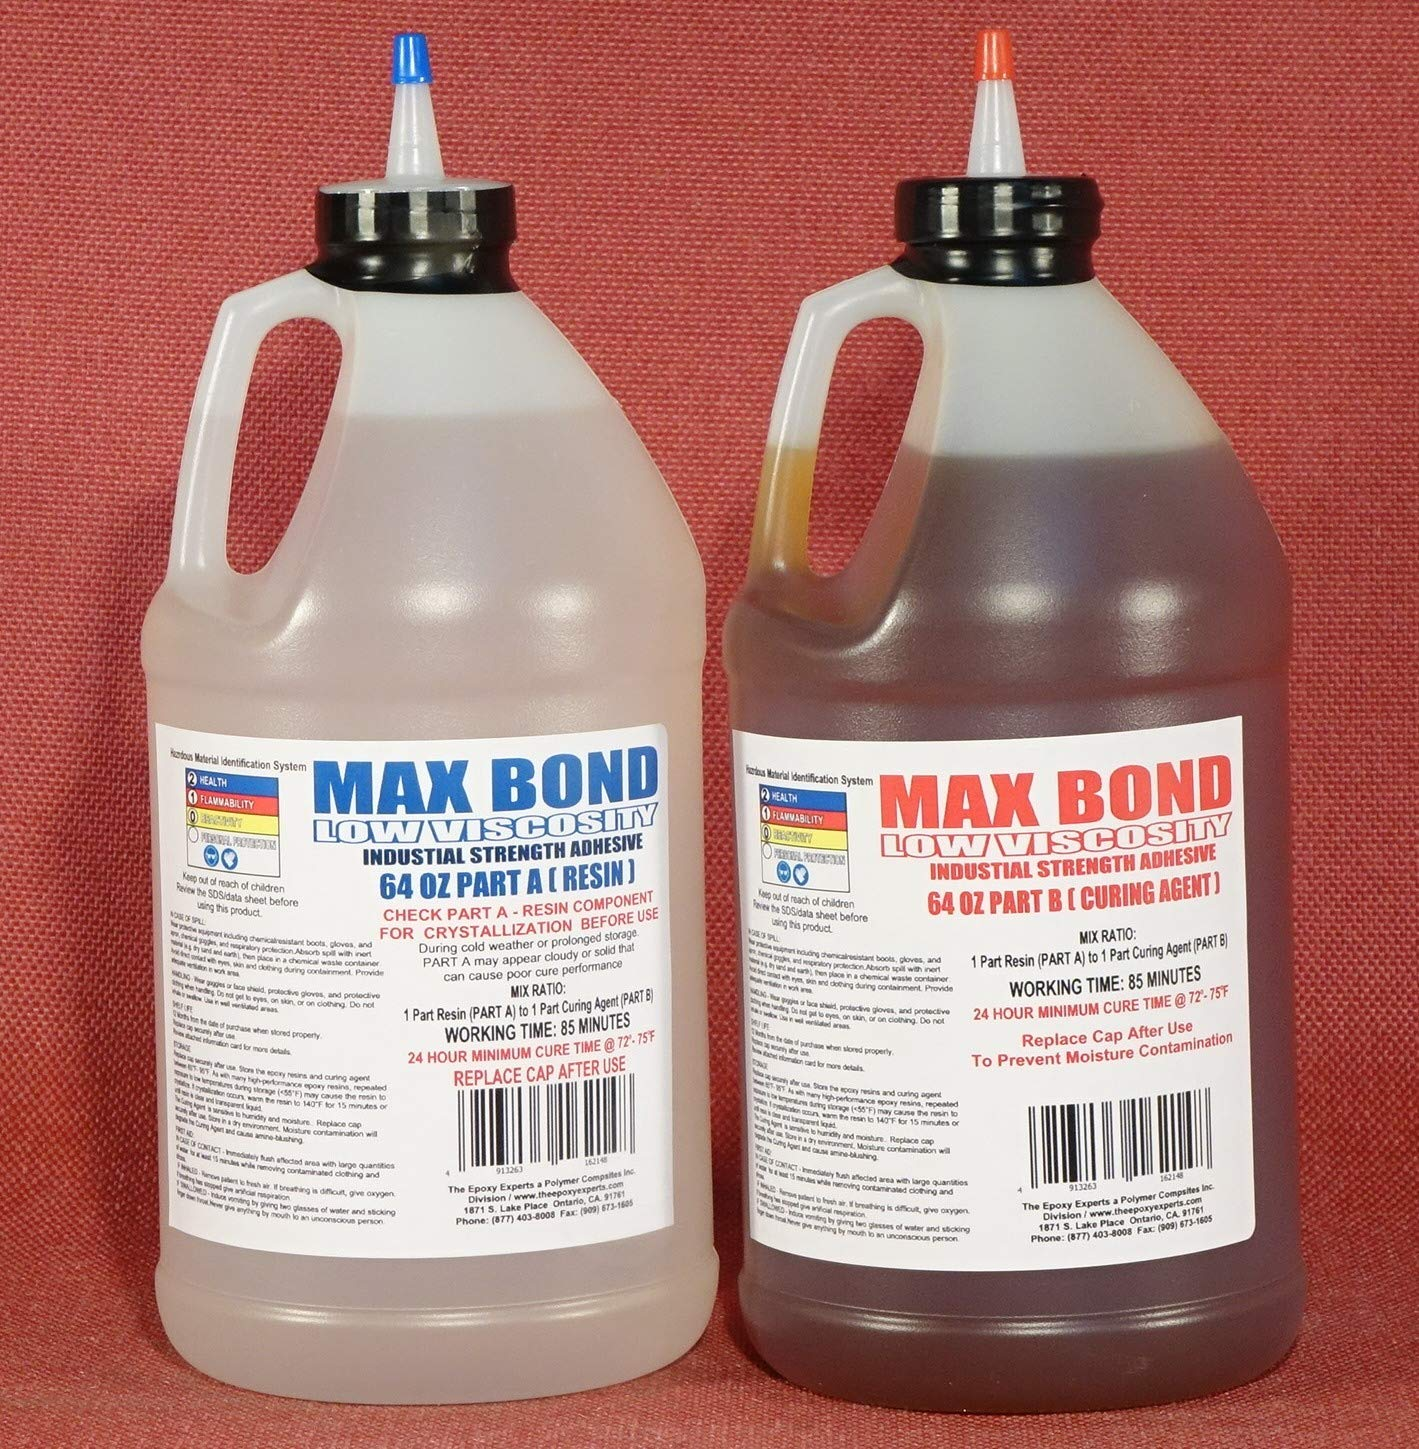 MAX MARINE GRADE Epoxy Resin System - 1 Gallon Kit - Wood Sealing, High Strength Fiberglassing Marine Applications, Composite Fabricating Resin by The Epoxy Experts, MAX EPOXY SYSTEMS